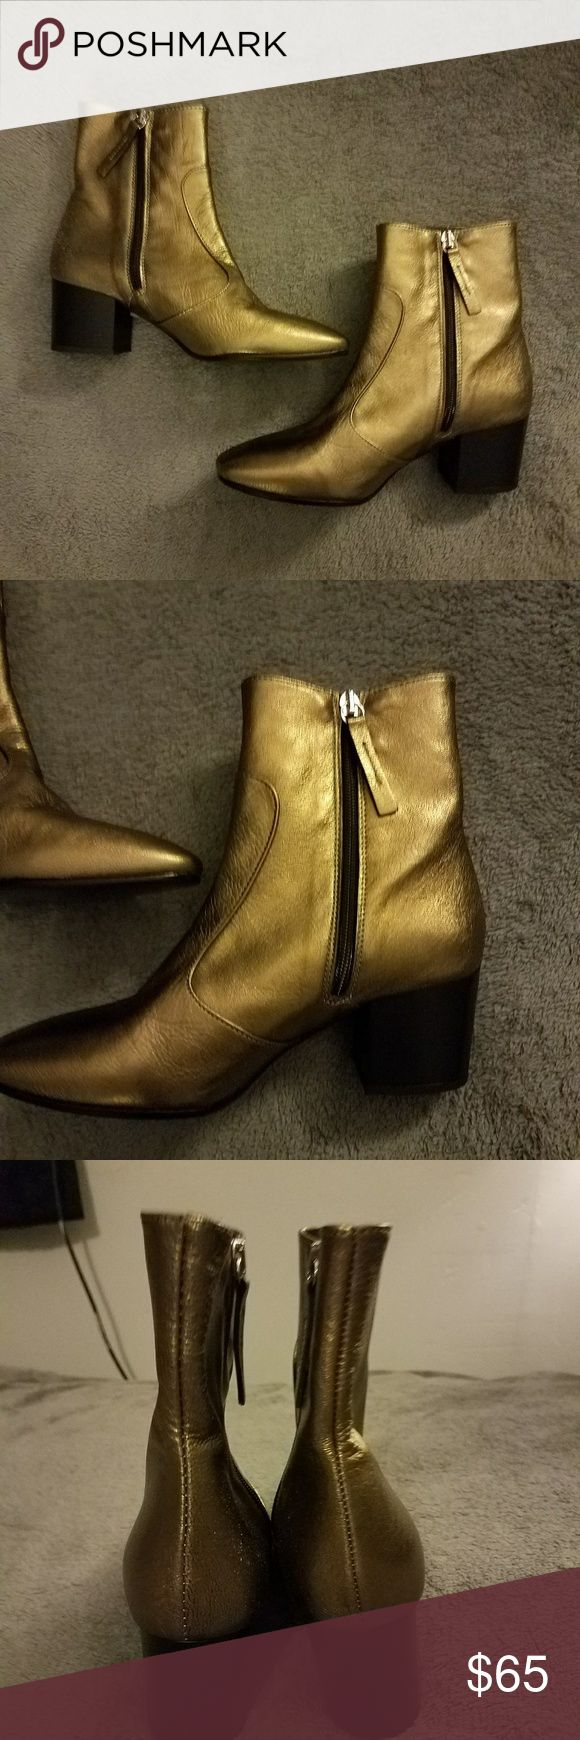 BRAND NEW Topshop Gold Metallic Heel Ankle Boot Brand new never worn!! Topshop gold metallic ankle boots. Zipper closure on sides and black heel. Size 37 from Topshop which is equal to a size 6.5 in US according to their websites size chart. Image for reference shown. Topshop Shoes Ankle Boots & Booties